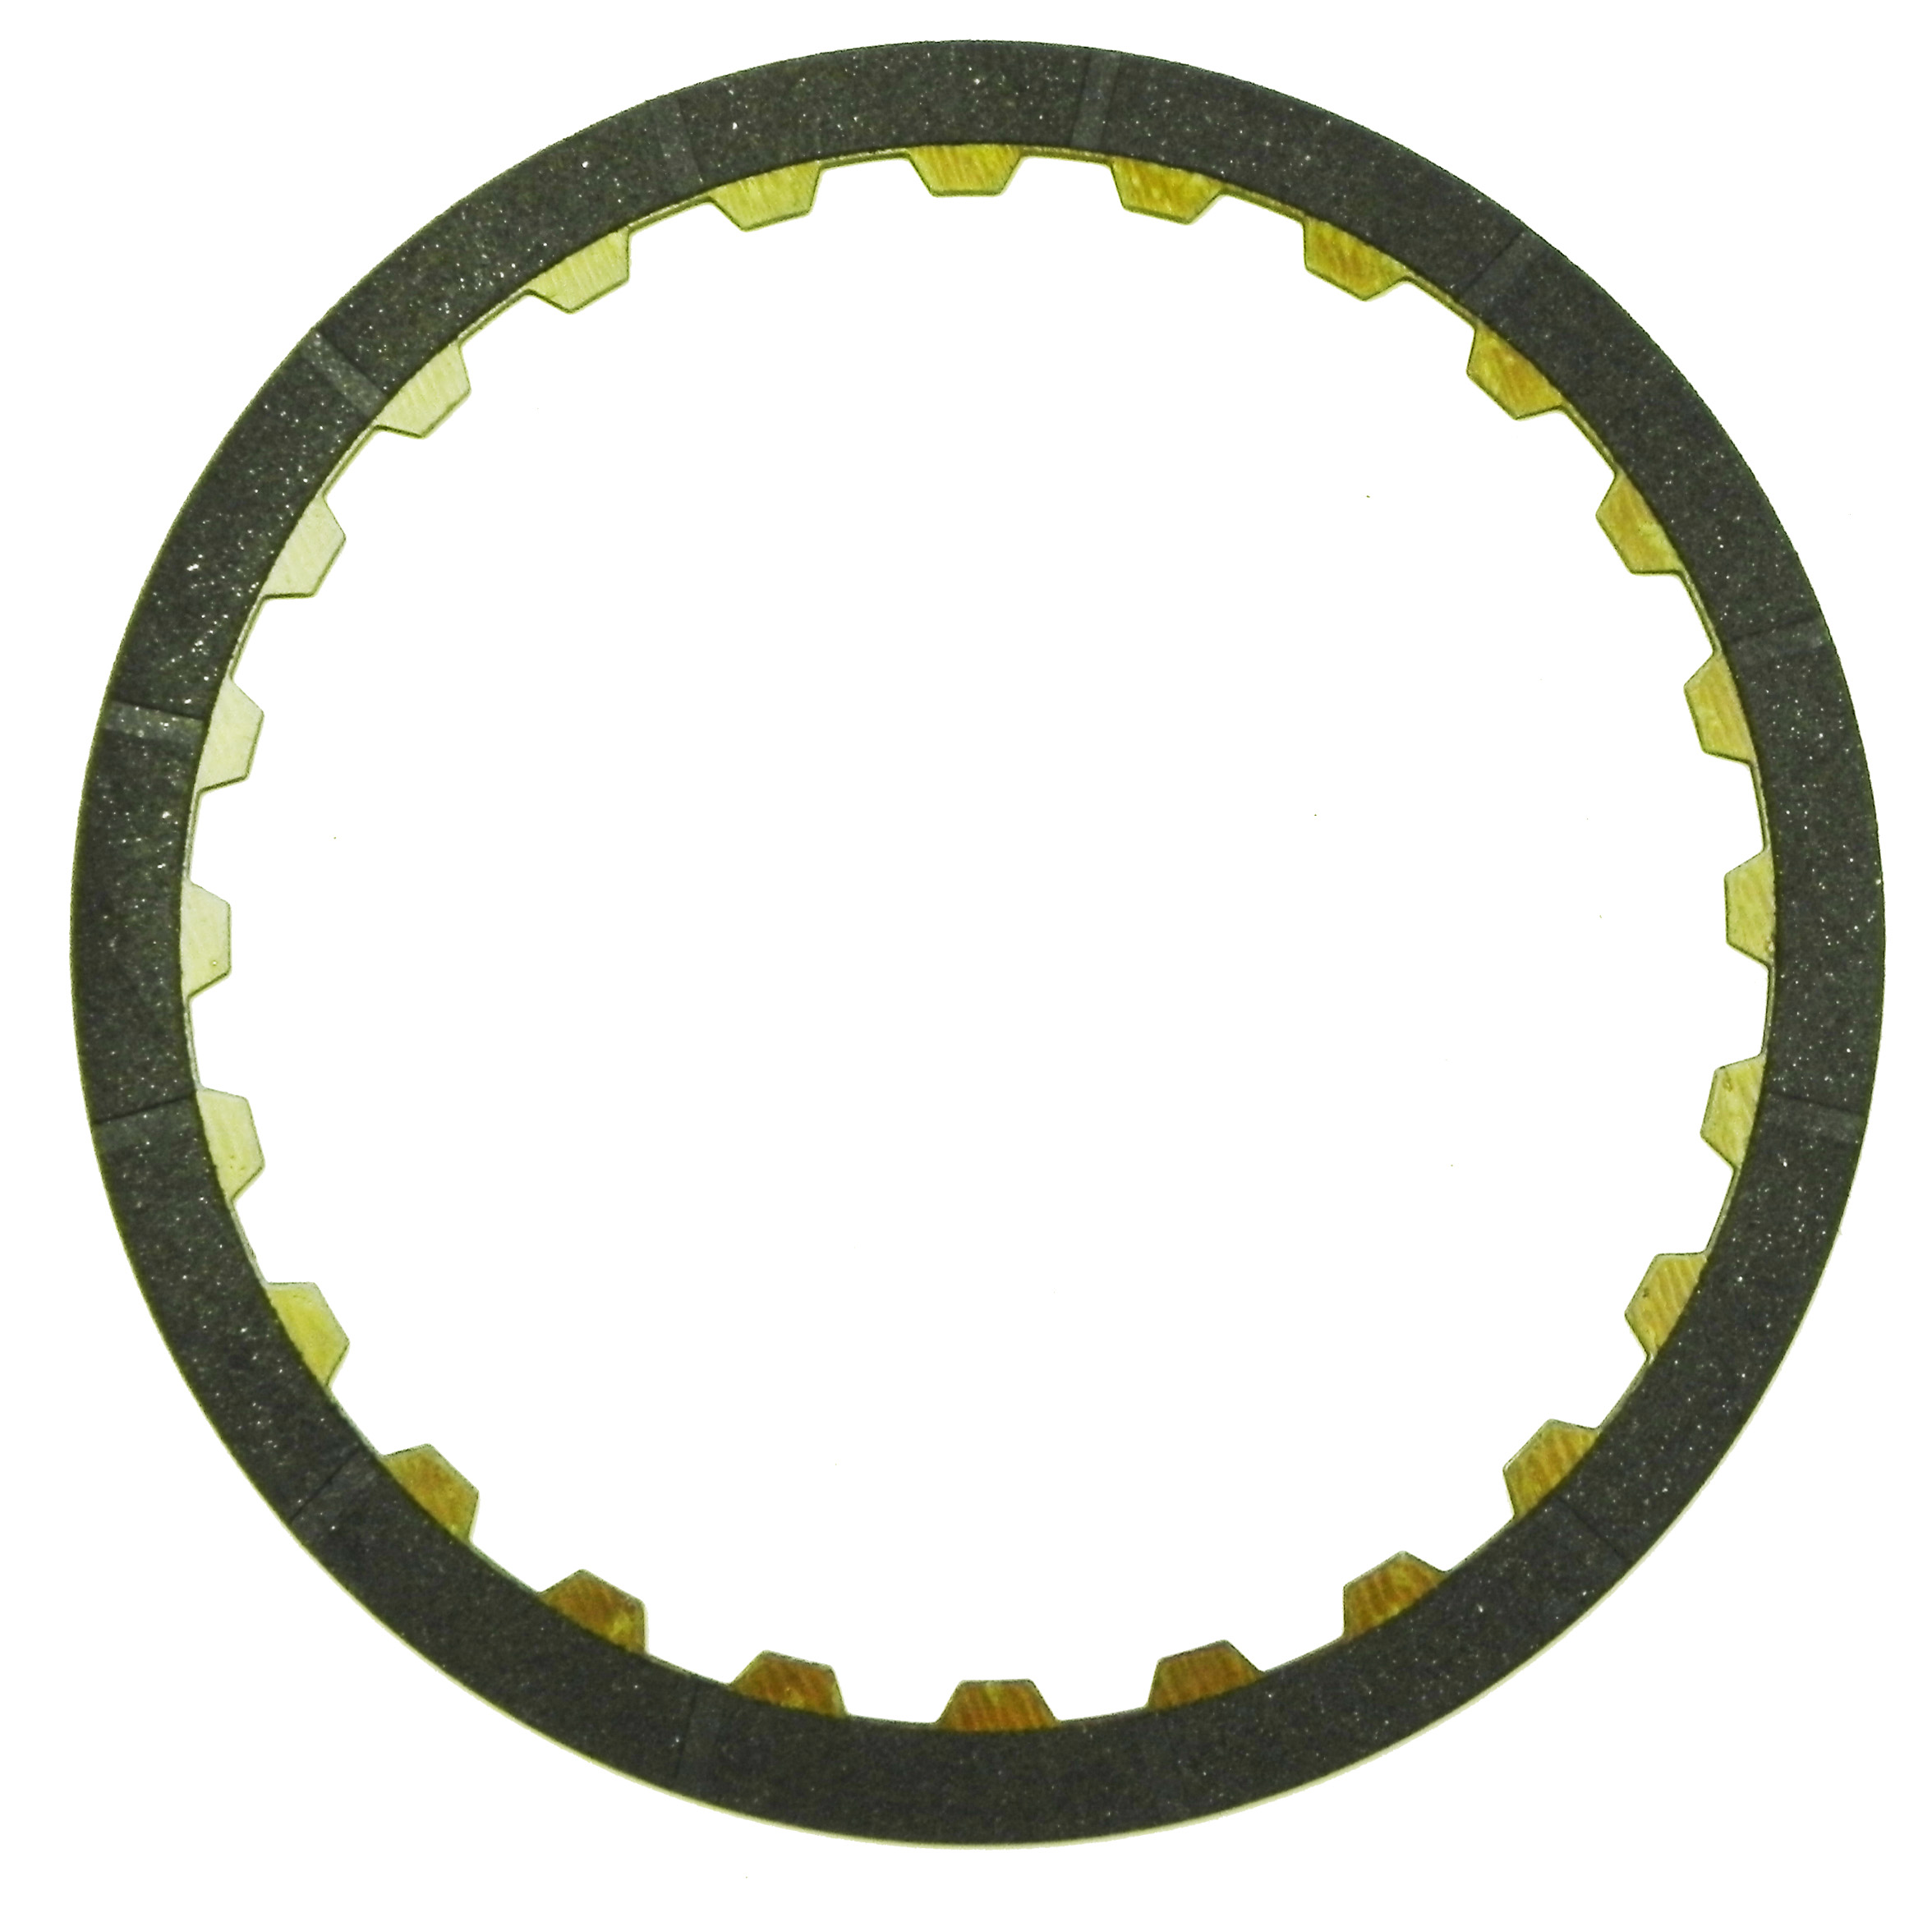 R558455 | 1999-ON Friction Clutch Plate High Energy 2nd, Single Sided, ID Spline High Energy